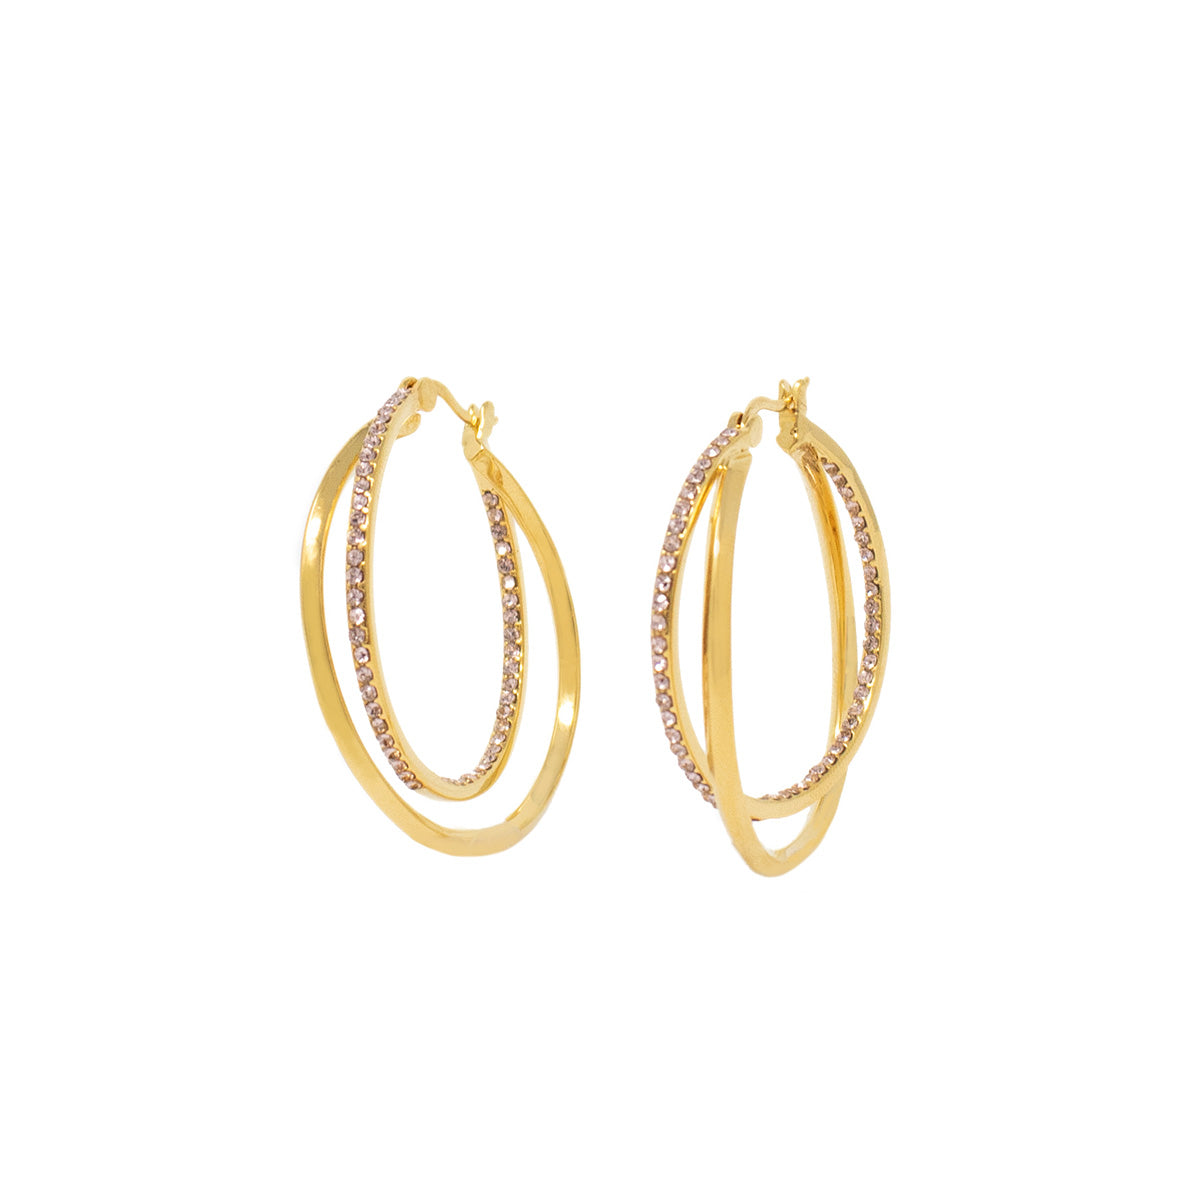 Cira Intertwined Pavé Hoop Earrings - Vintage Rose